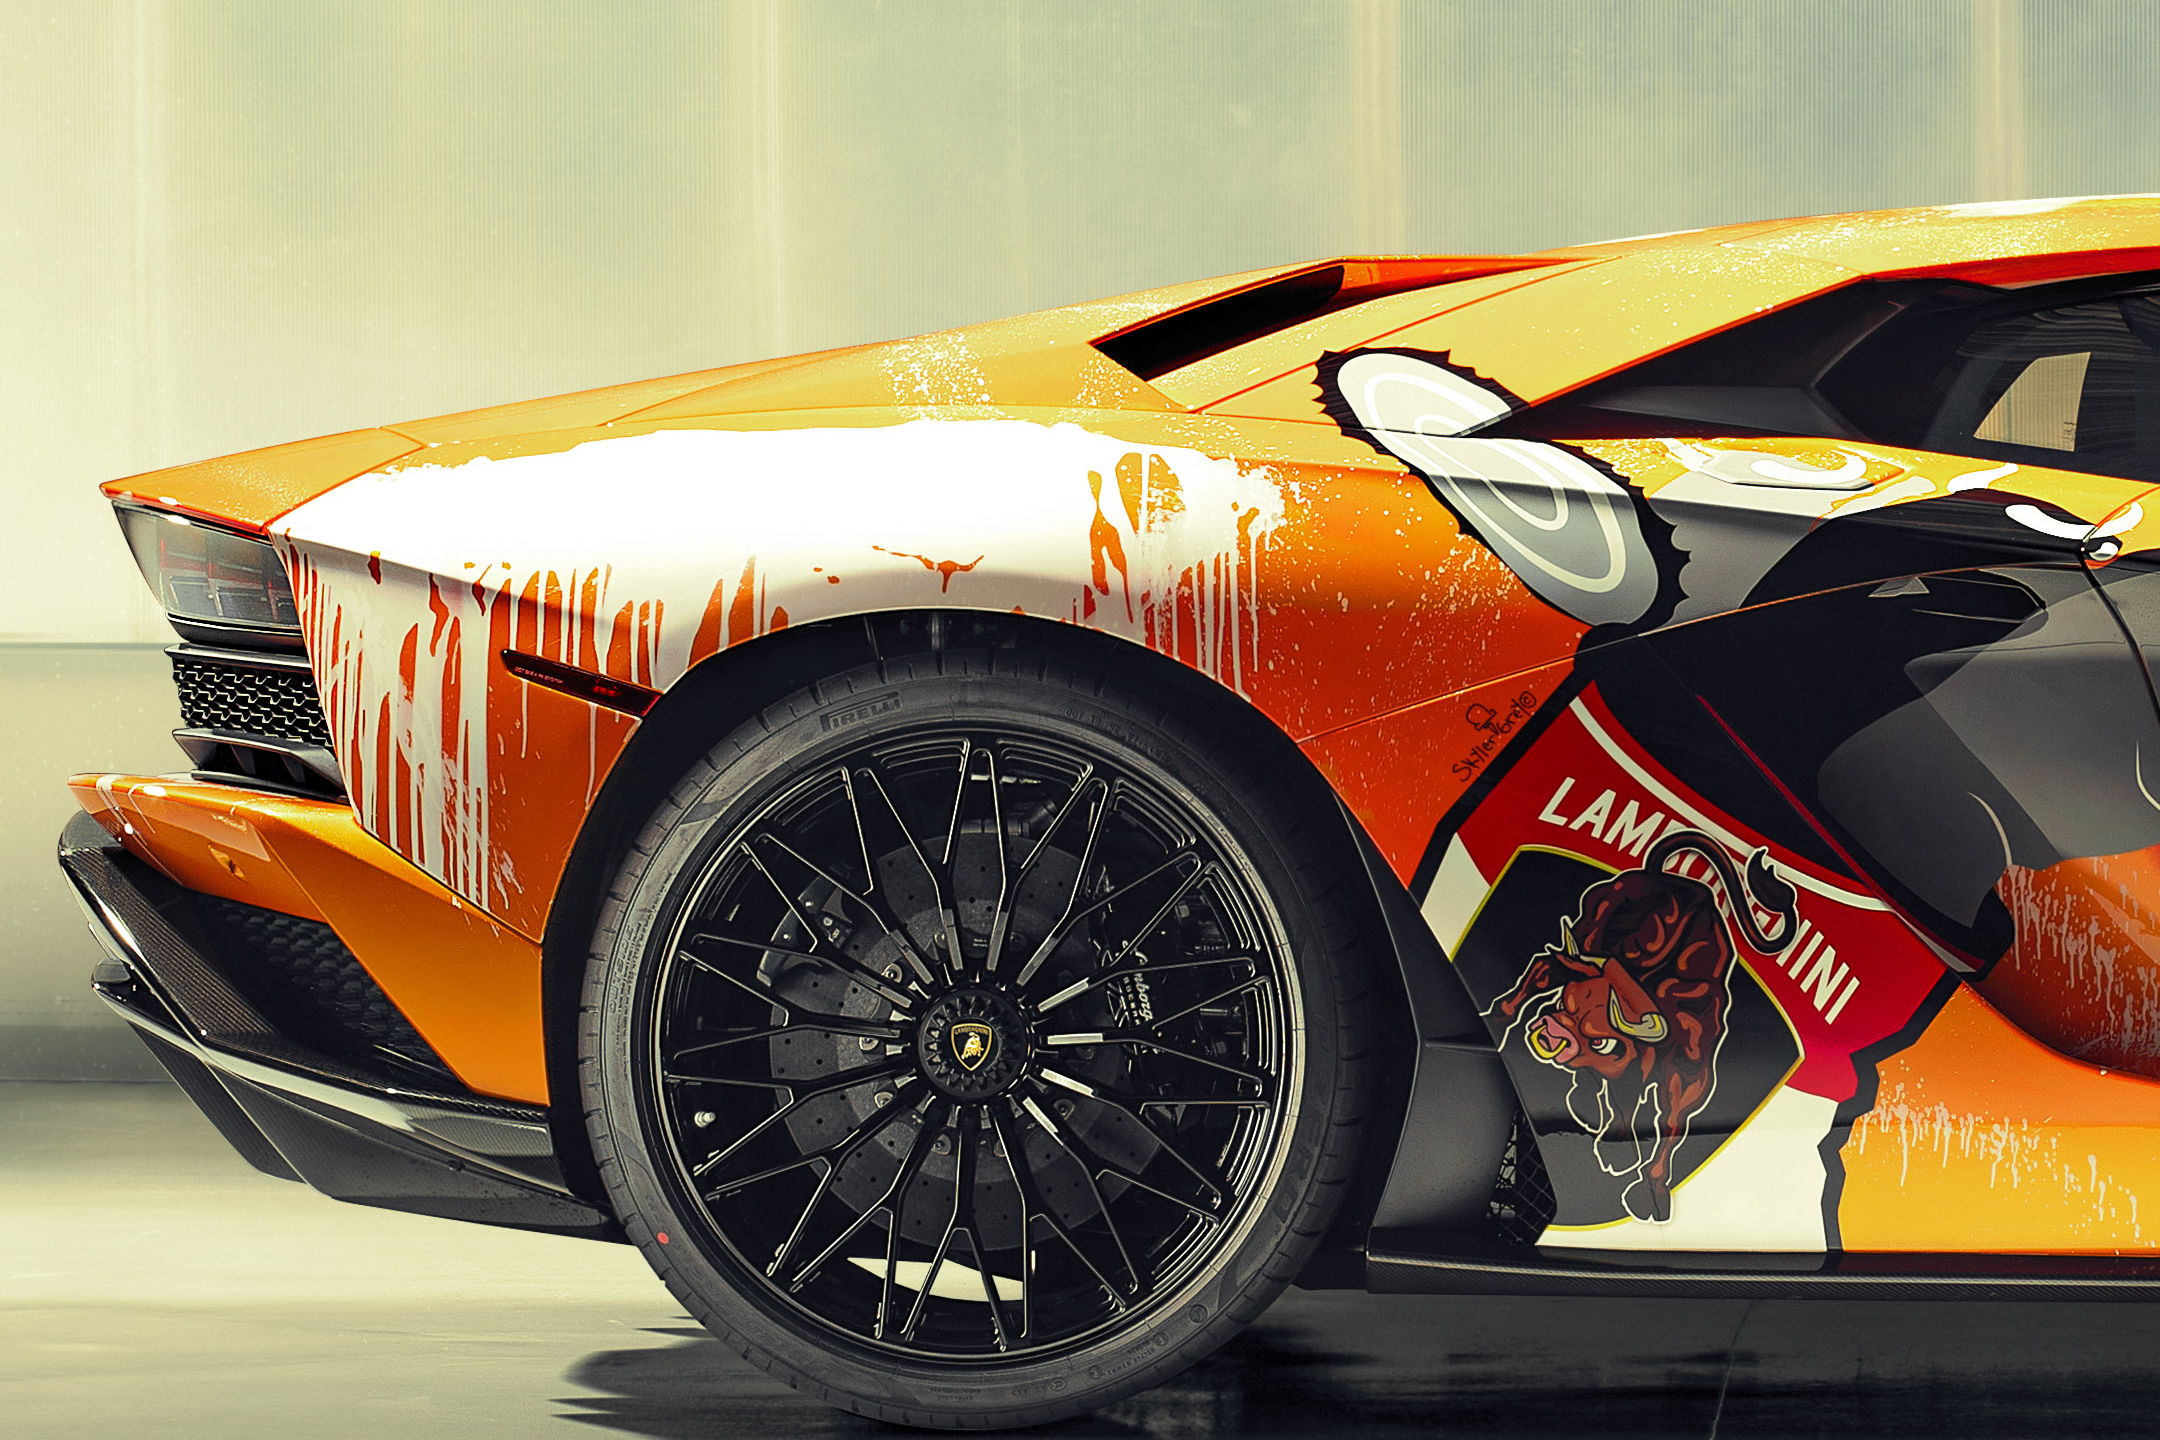 Lamborghini one-off Aventador S by Skyler Grey Art - 2019 - rear wheel / jante arrière